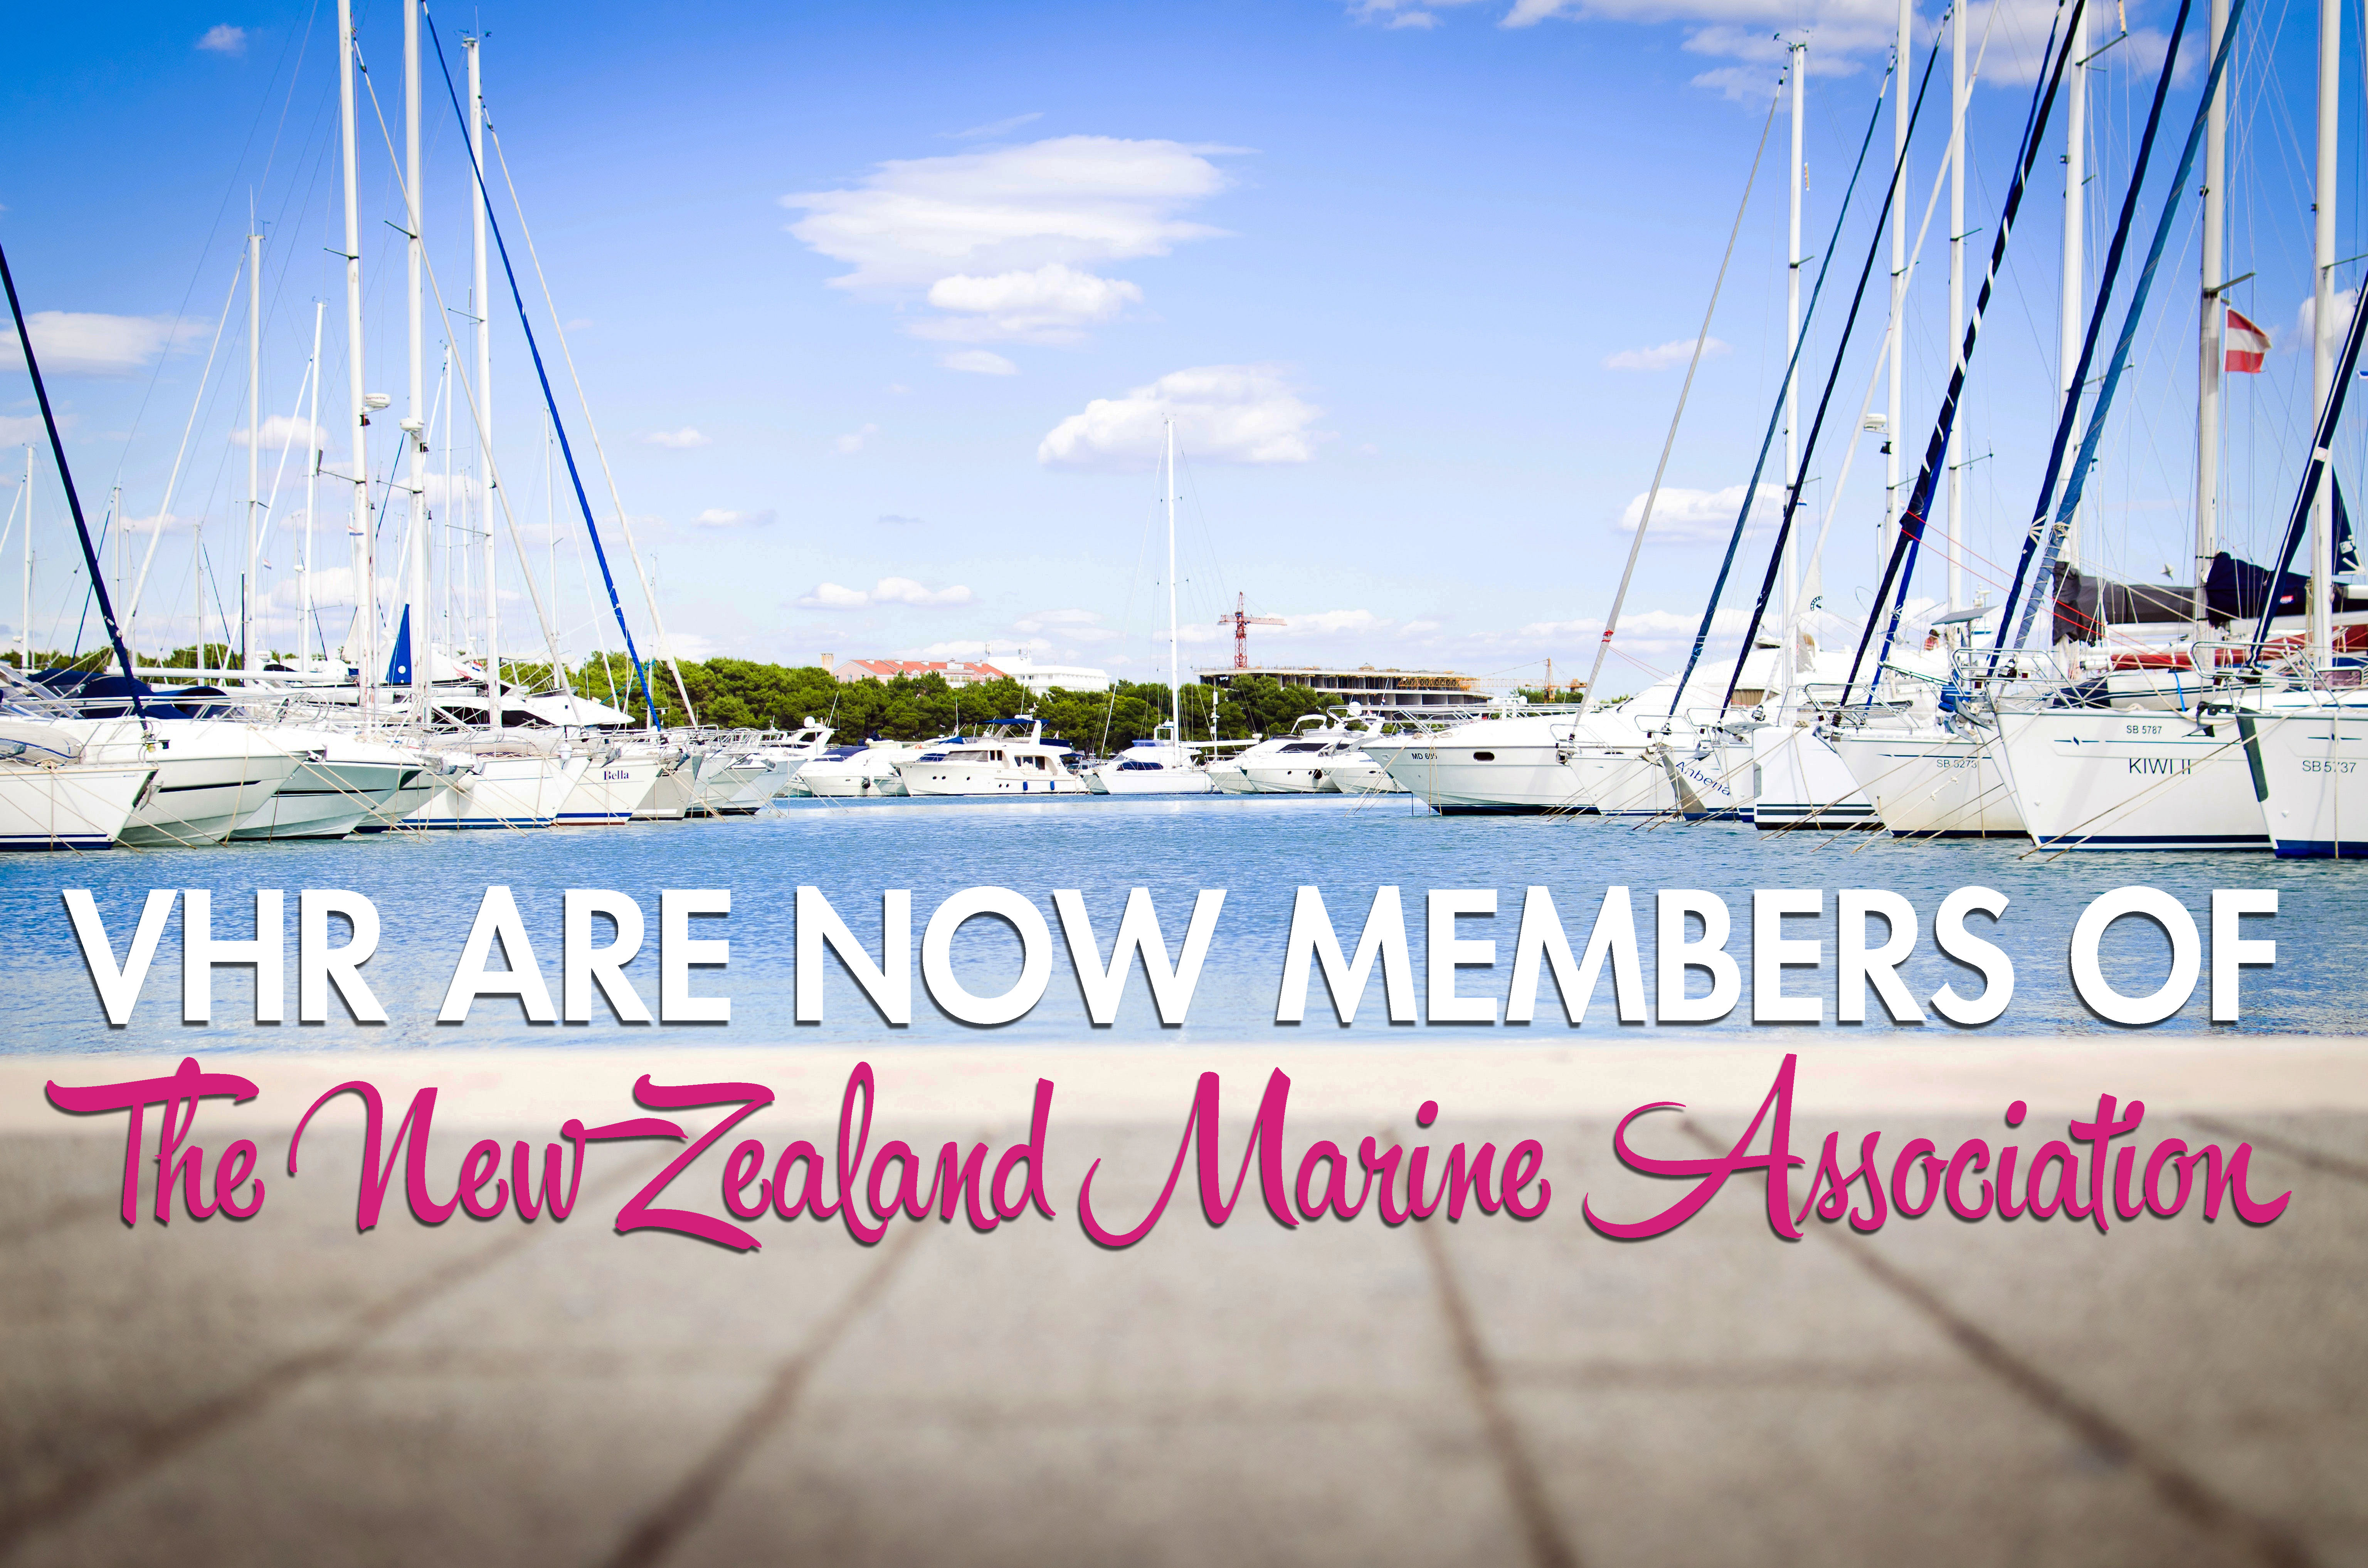 VHR are now members of the New Zealand Marine Association